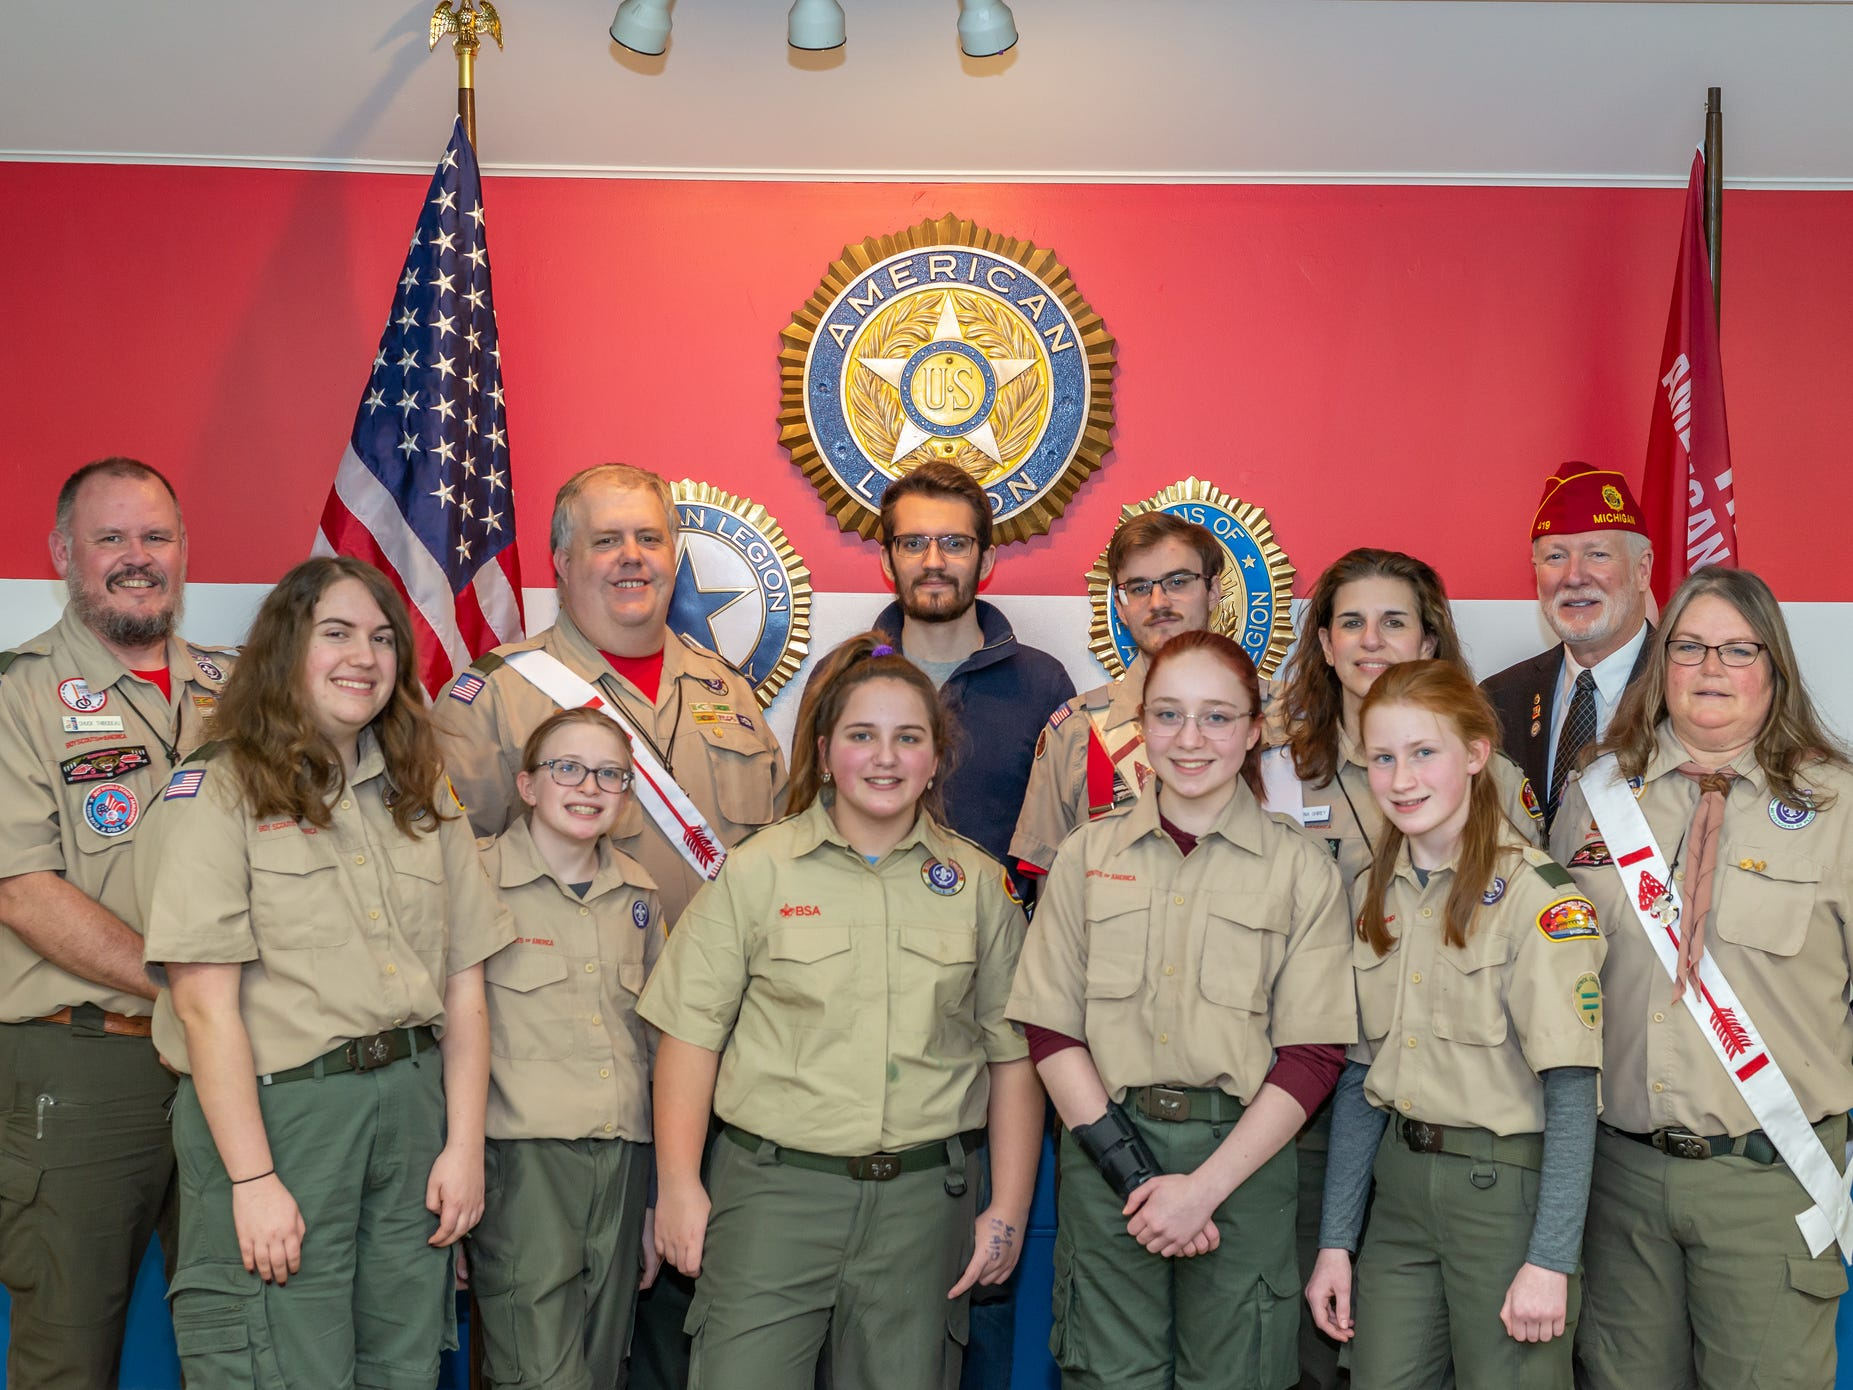 The newly created Troop 310, enjoyed their kickoff meeting Monday Feb. 18, 2019. They are the first girls Scouts BSA troop in Livingston County.